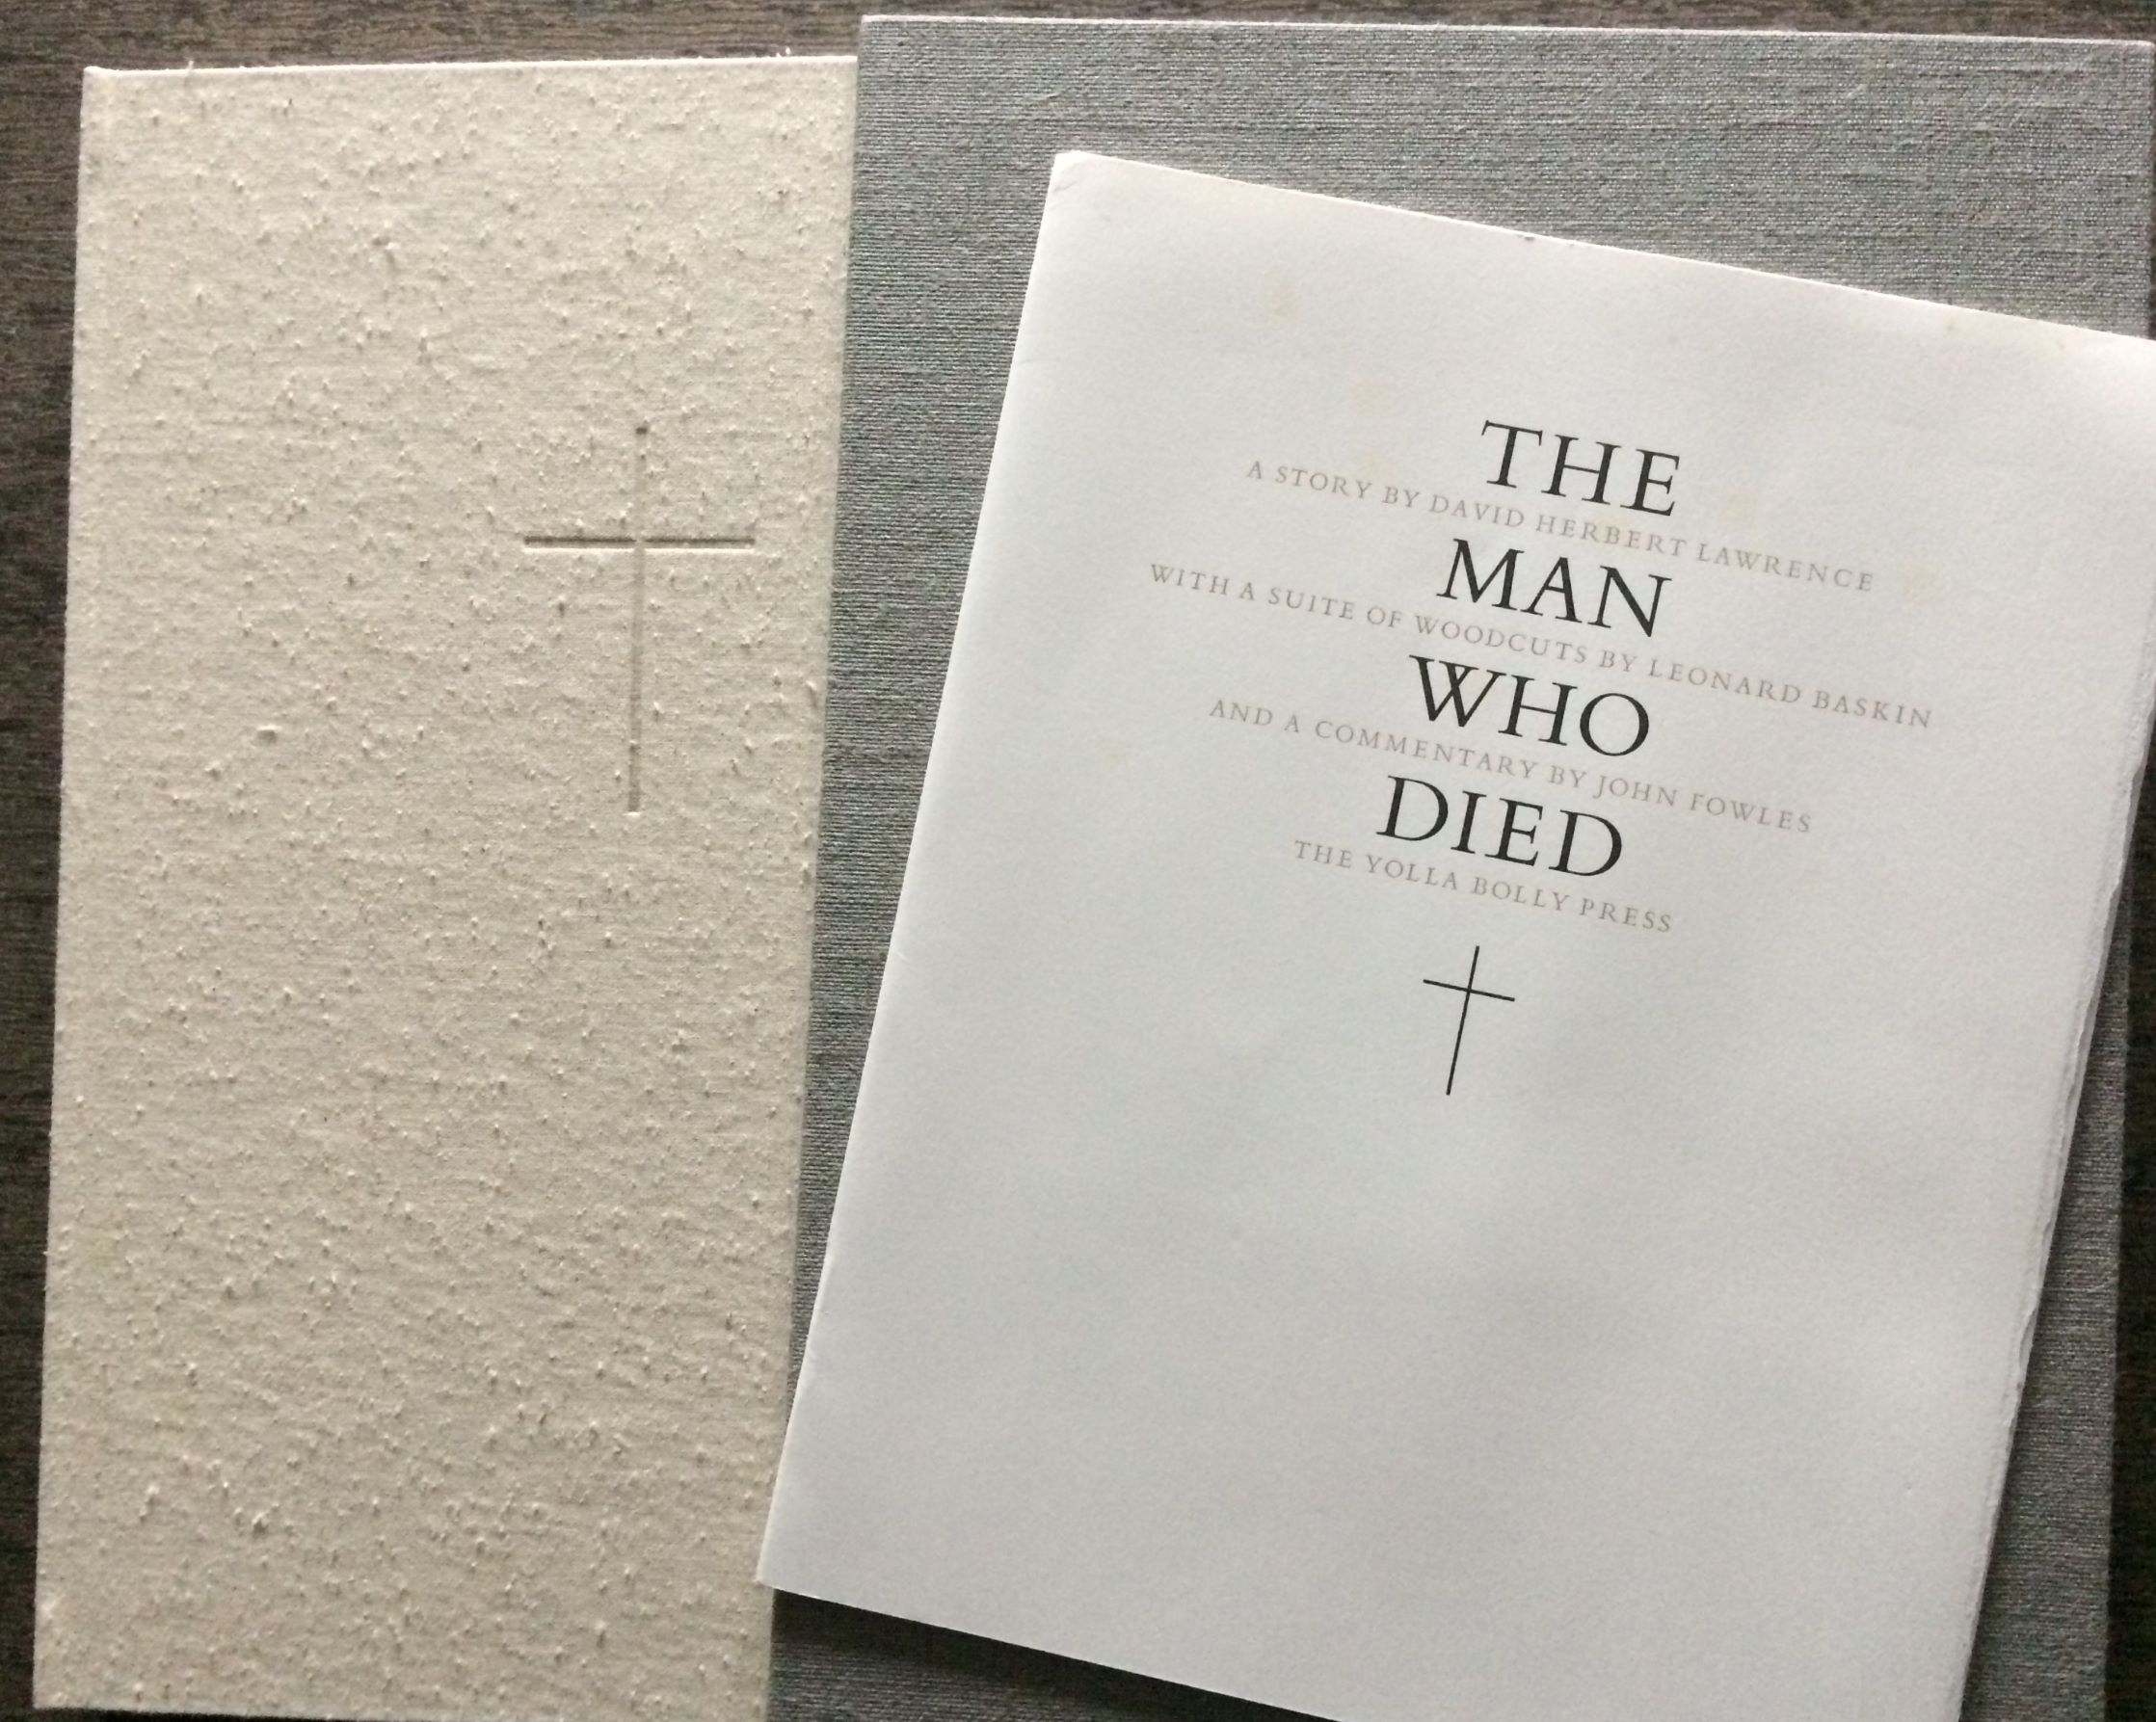 Image for The Man Who Died. A Story by David Herbert Lawrence, with woodblock illustrations by Leonard Baskin, and a commentary by John Fowles. (Signed by Baskin & Fowles).